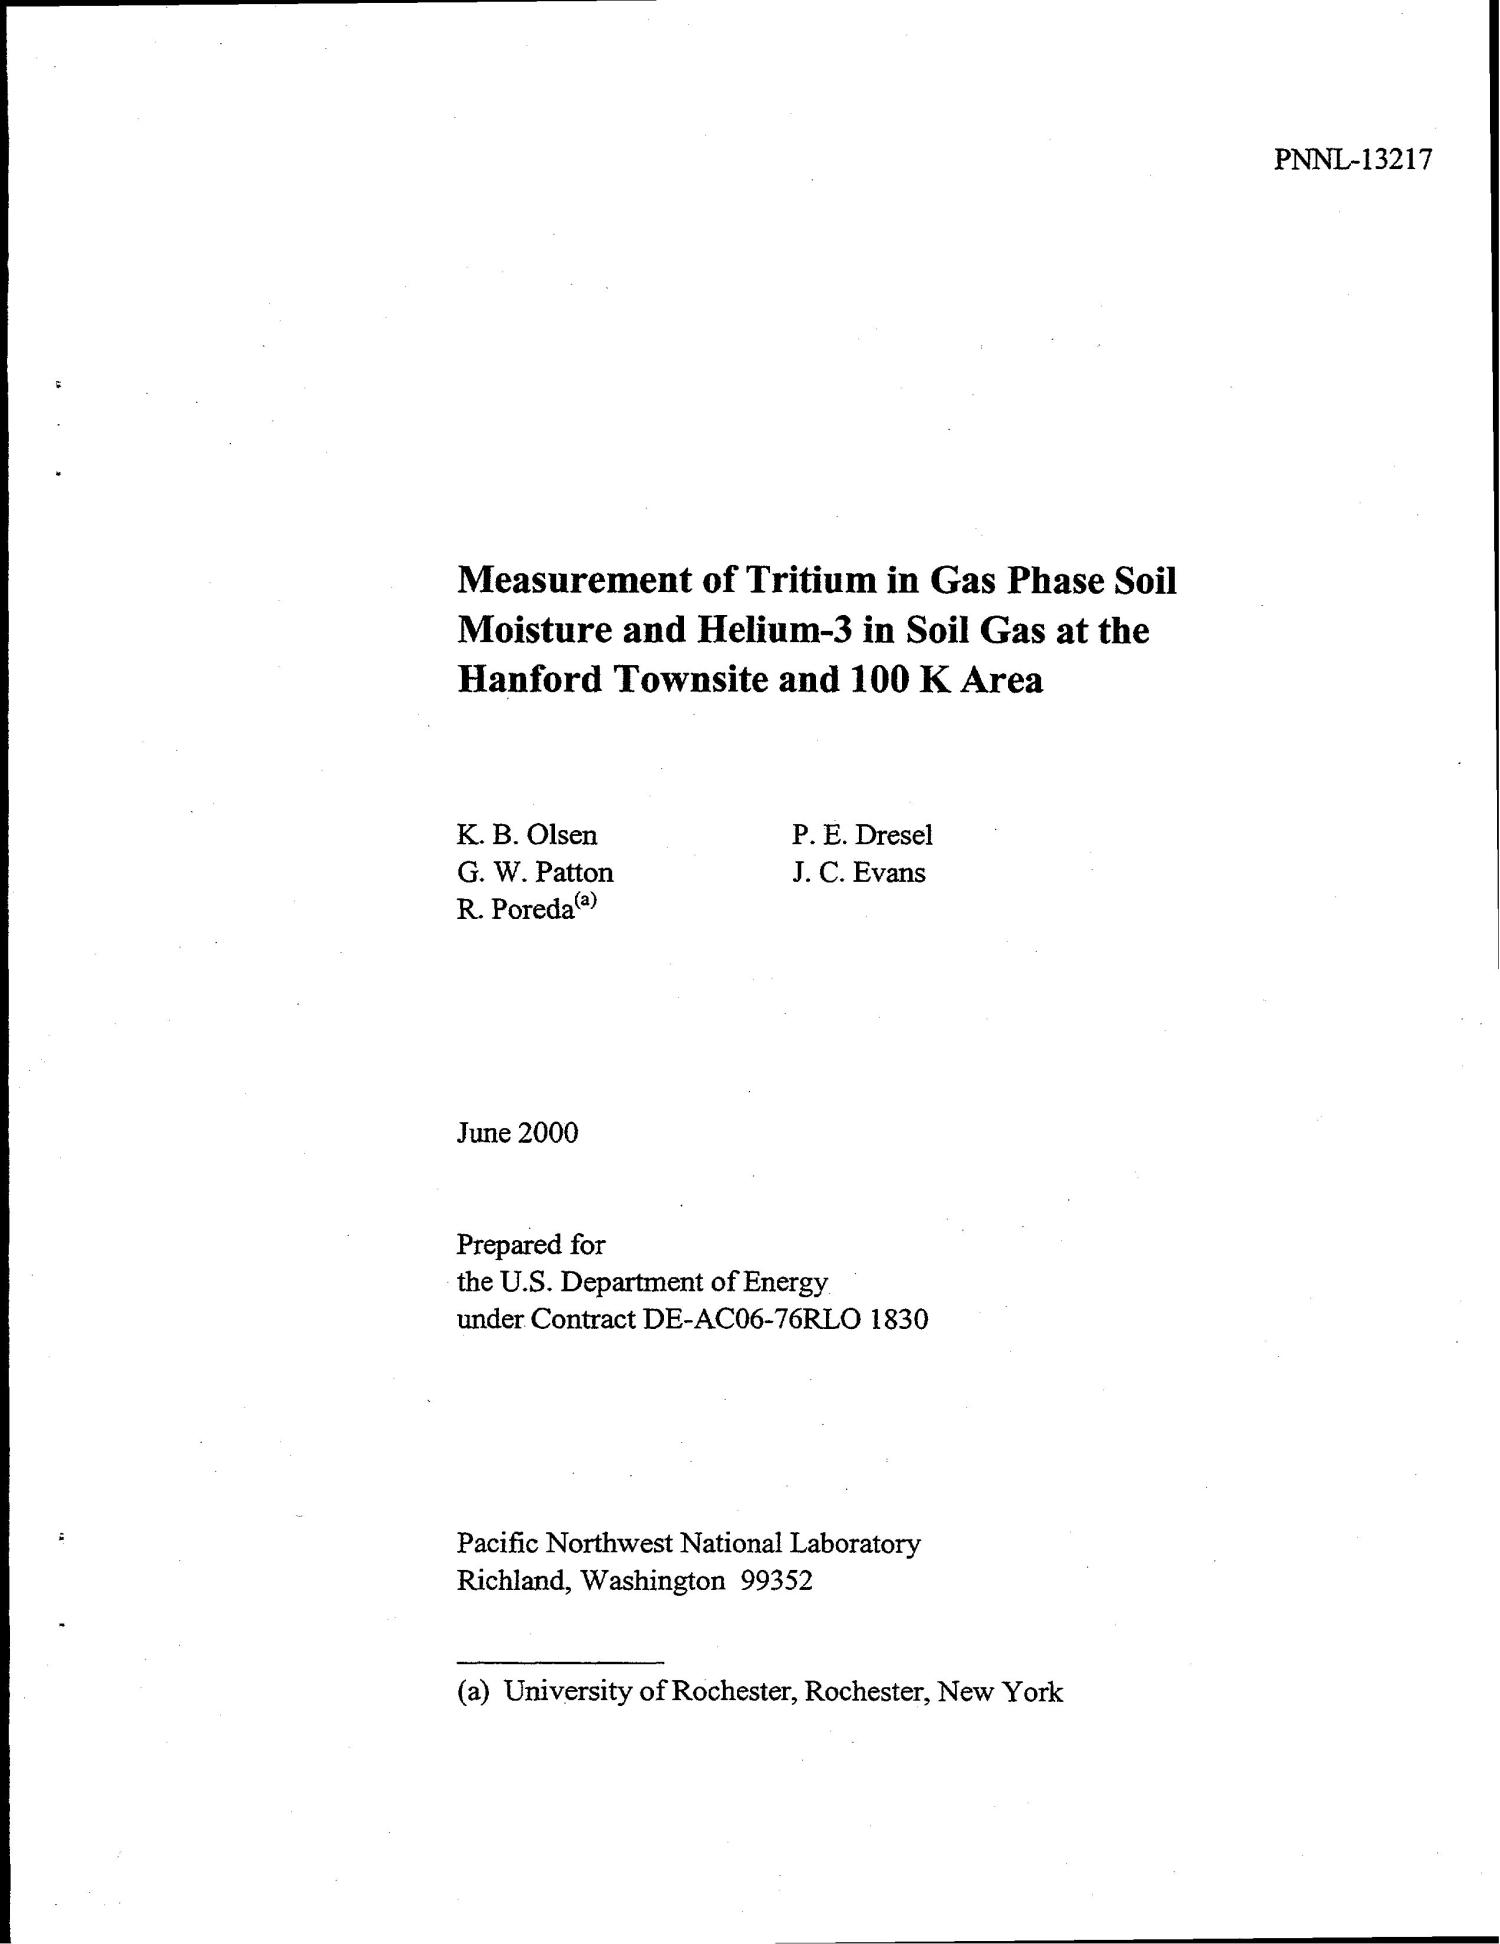 Measurement of Tritium in Gas Phase Soil Moisture and Helium-3 in Soil Gas at the Hanford Townsite and 100 K Area                                                                                                      [Sequence #]: 1 of 26